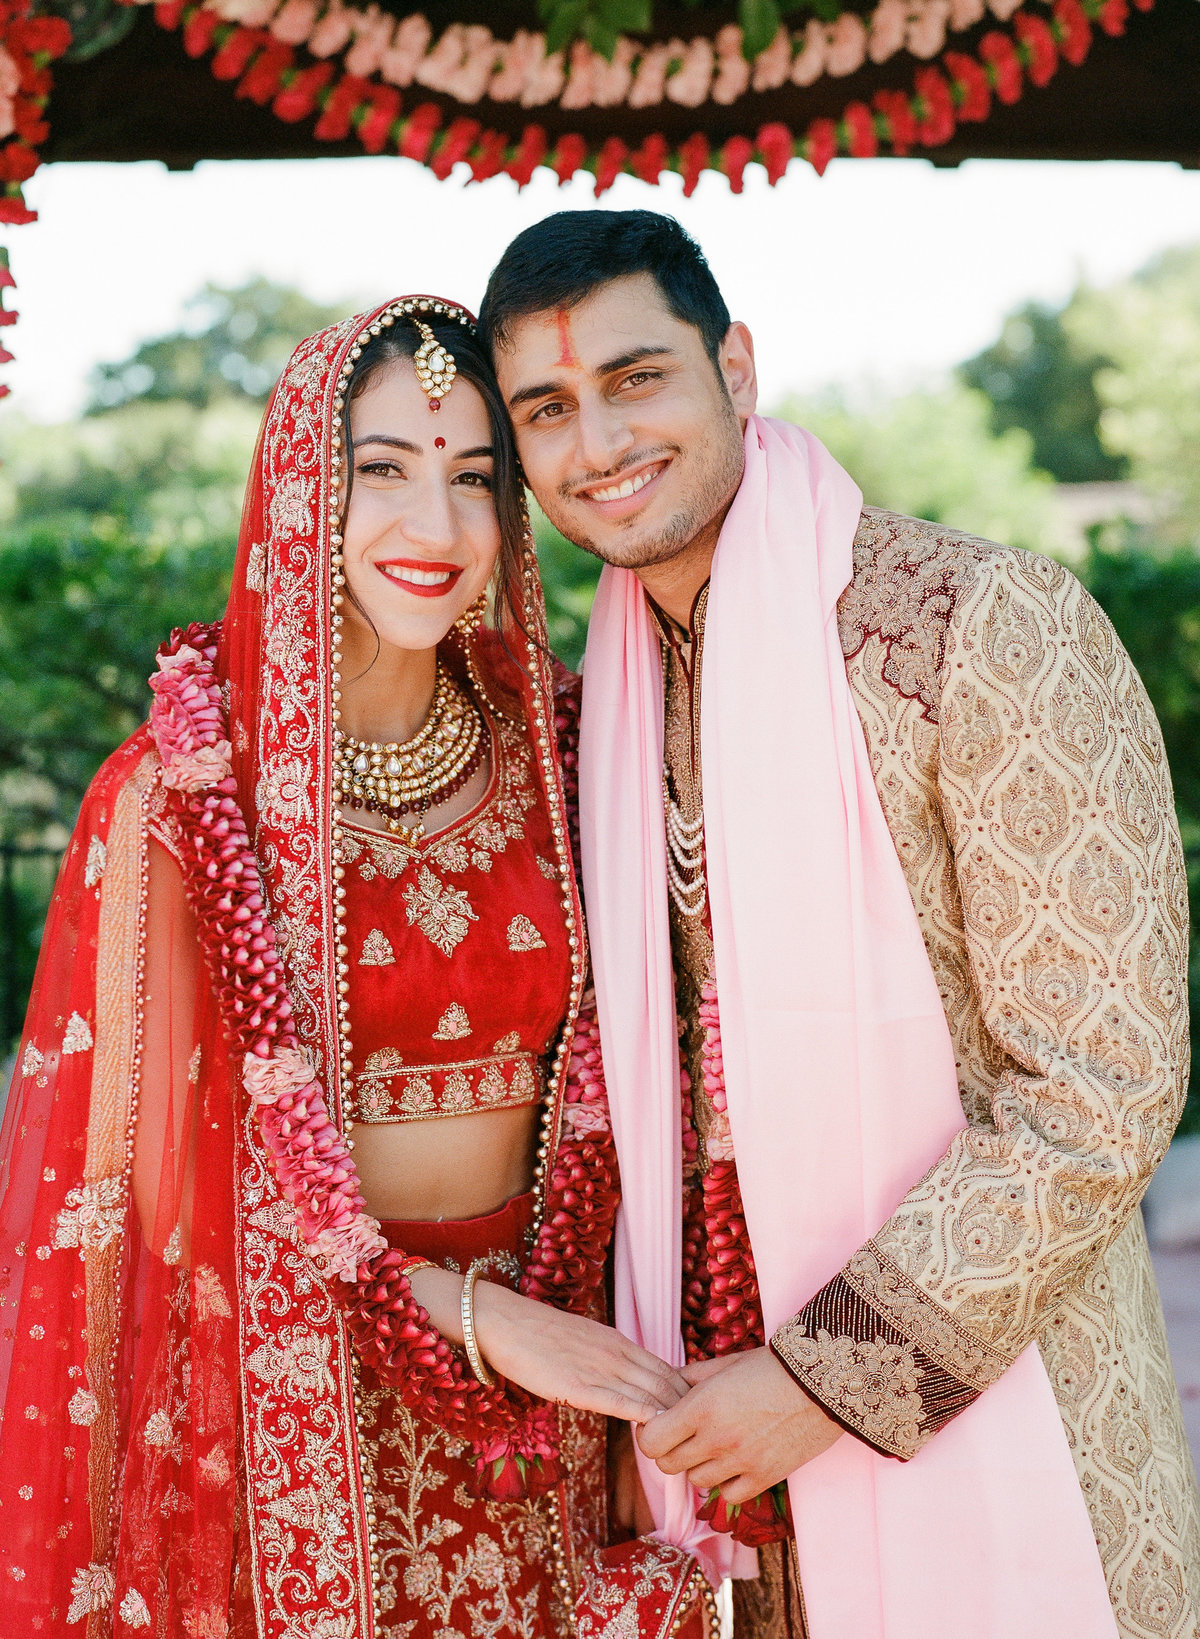 sasha-aneesh-wedding-bride-groom-indian-132